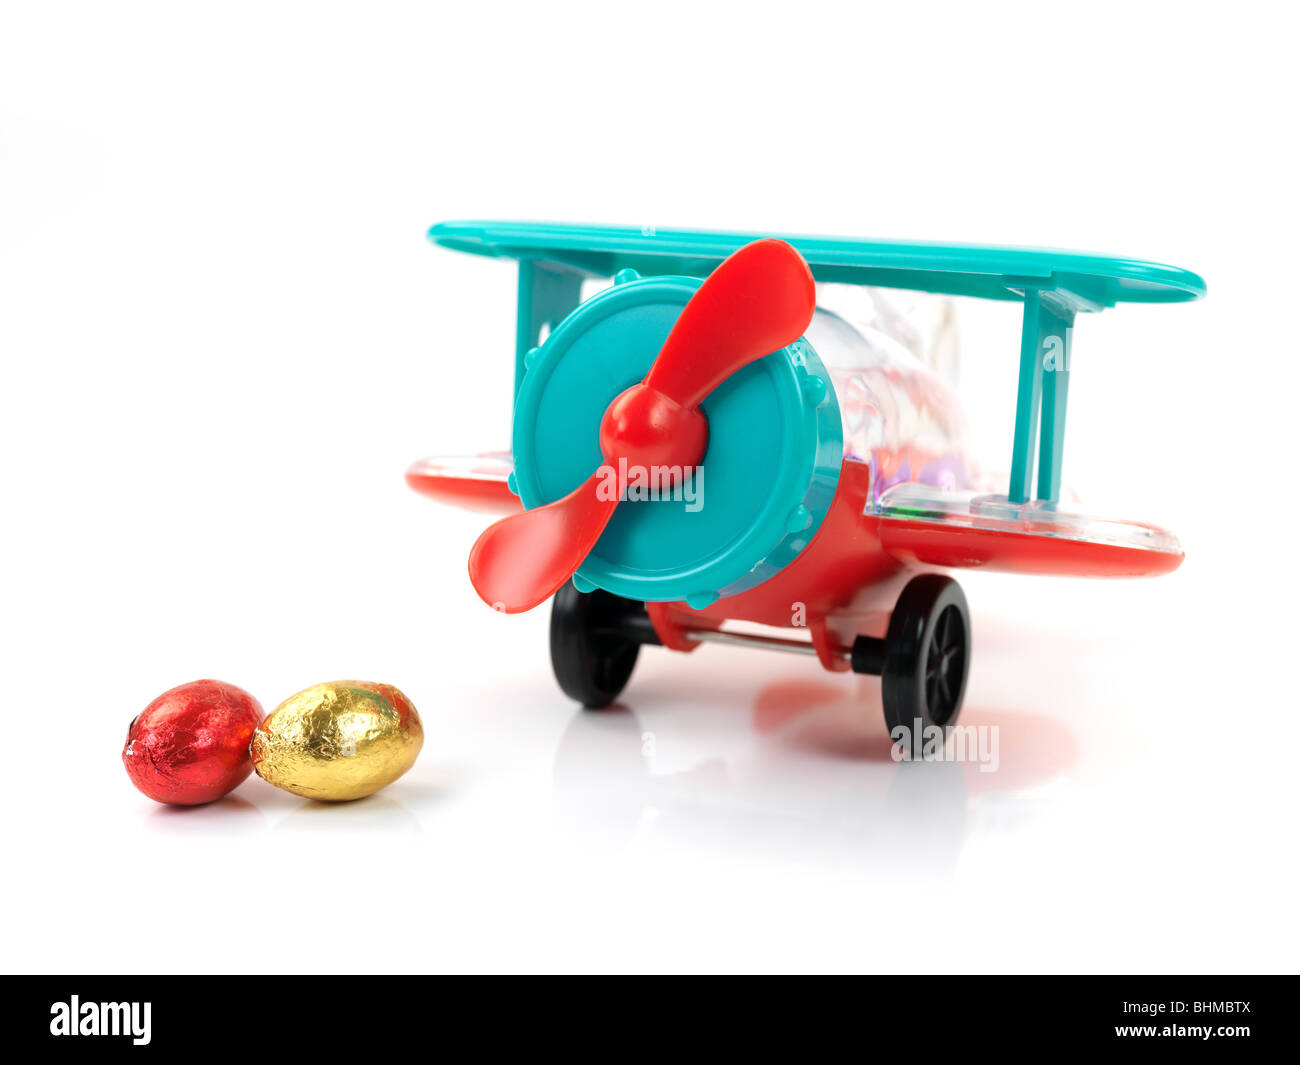 An aeroplane easter egg toy isolated against a white background - Stock Image